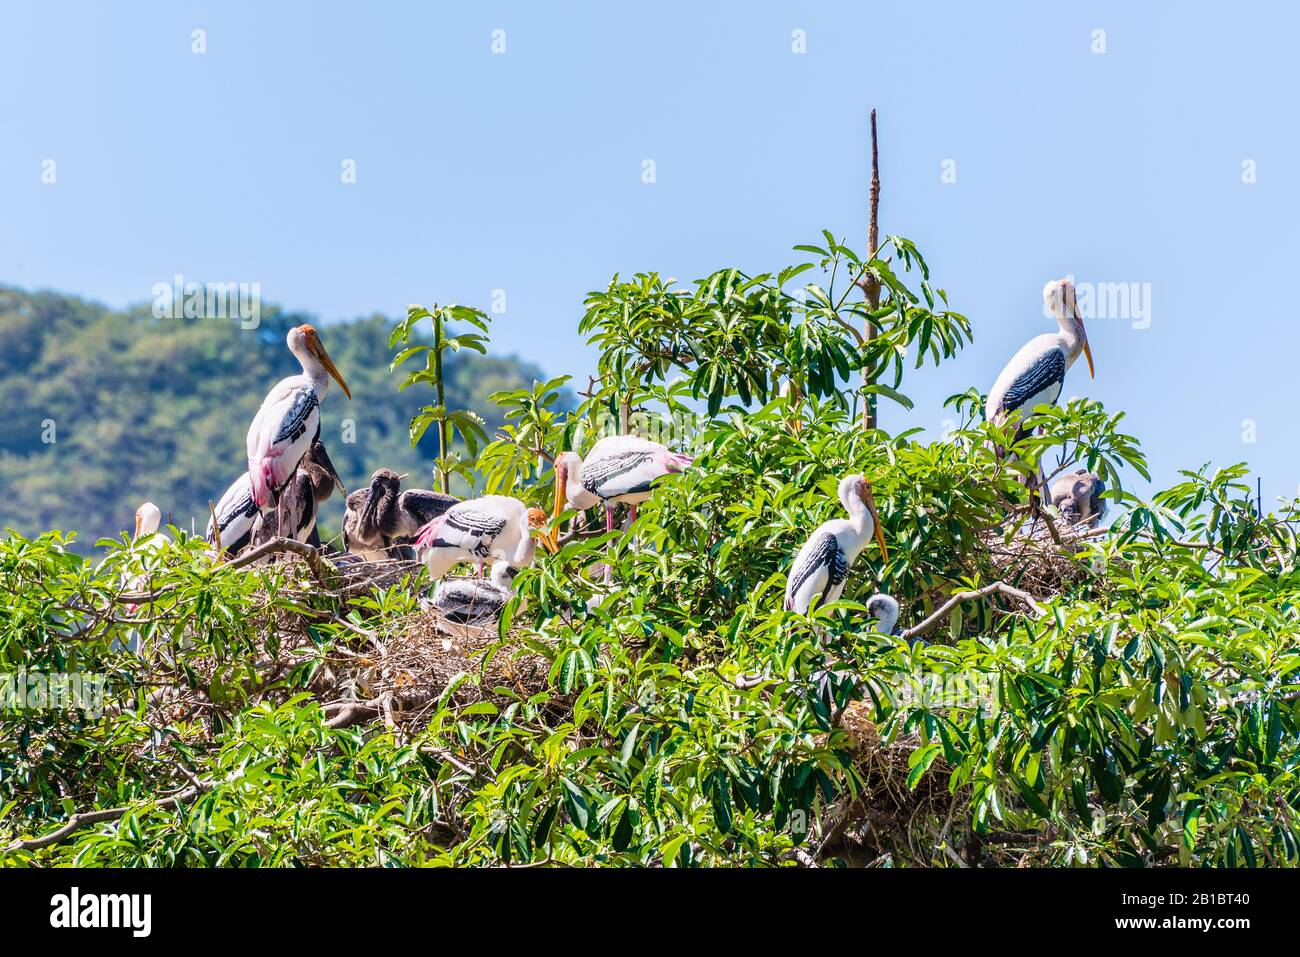 Group of Painted Stork or Mycteria Leucocephala, Closeup flock of big birds build a nest on a tall green tree and has a baby, Beautiful wildlife in na Stock Photo